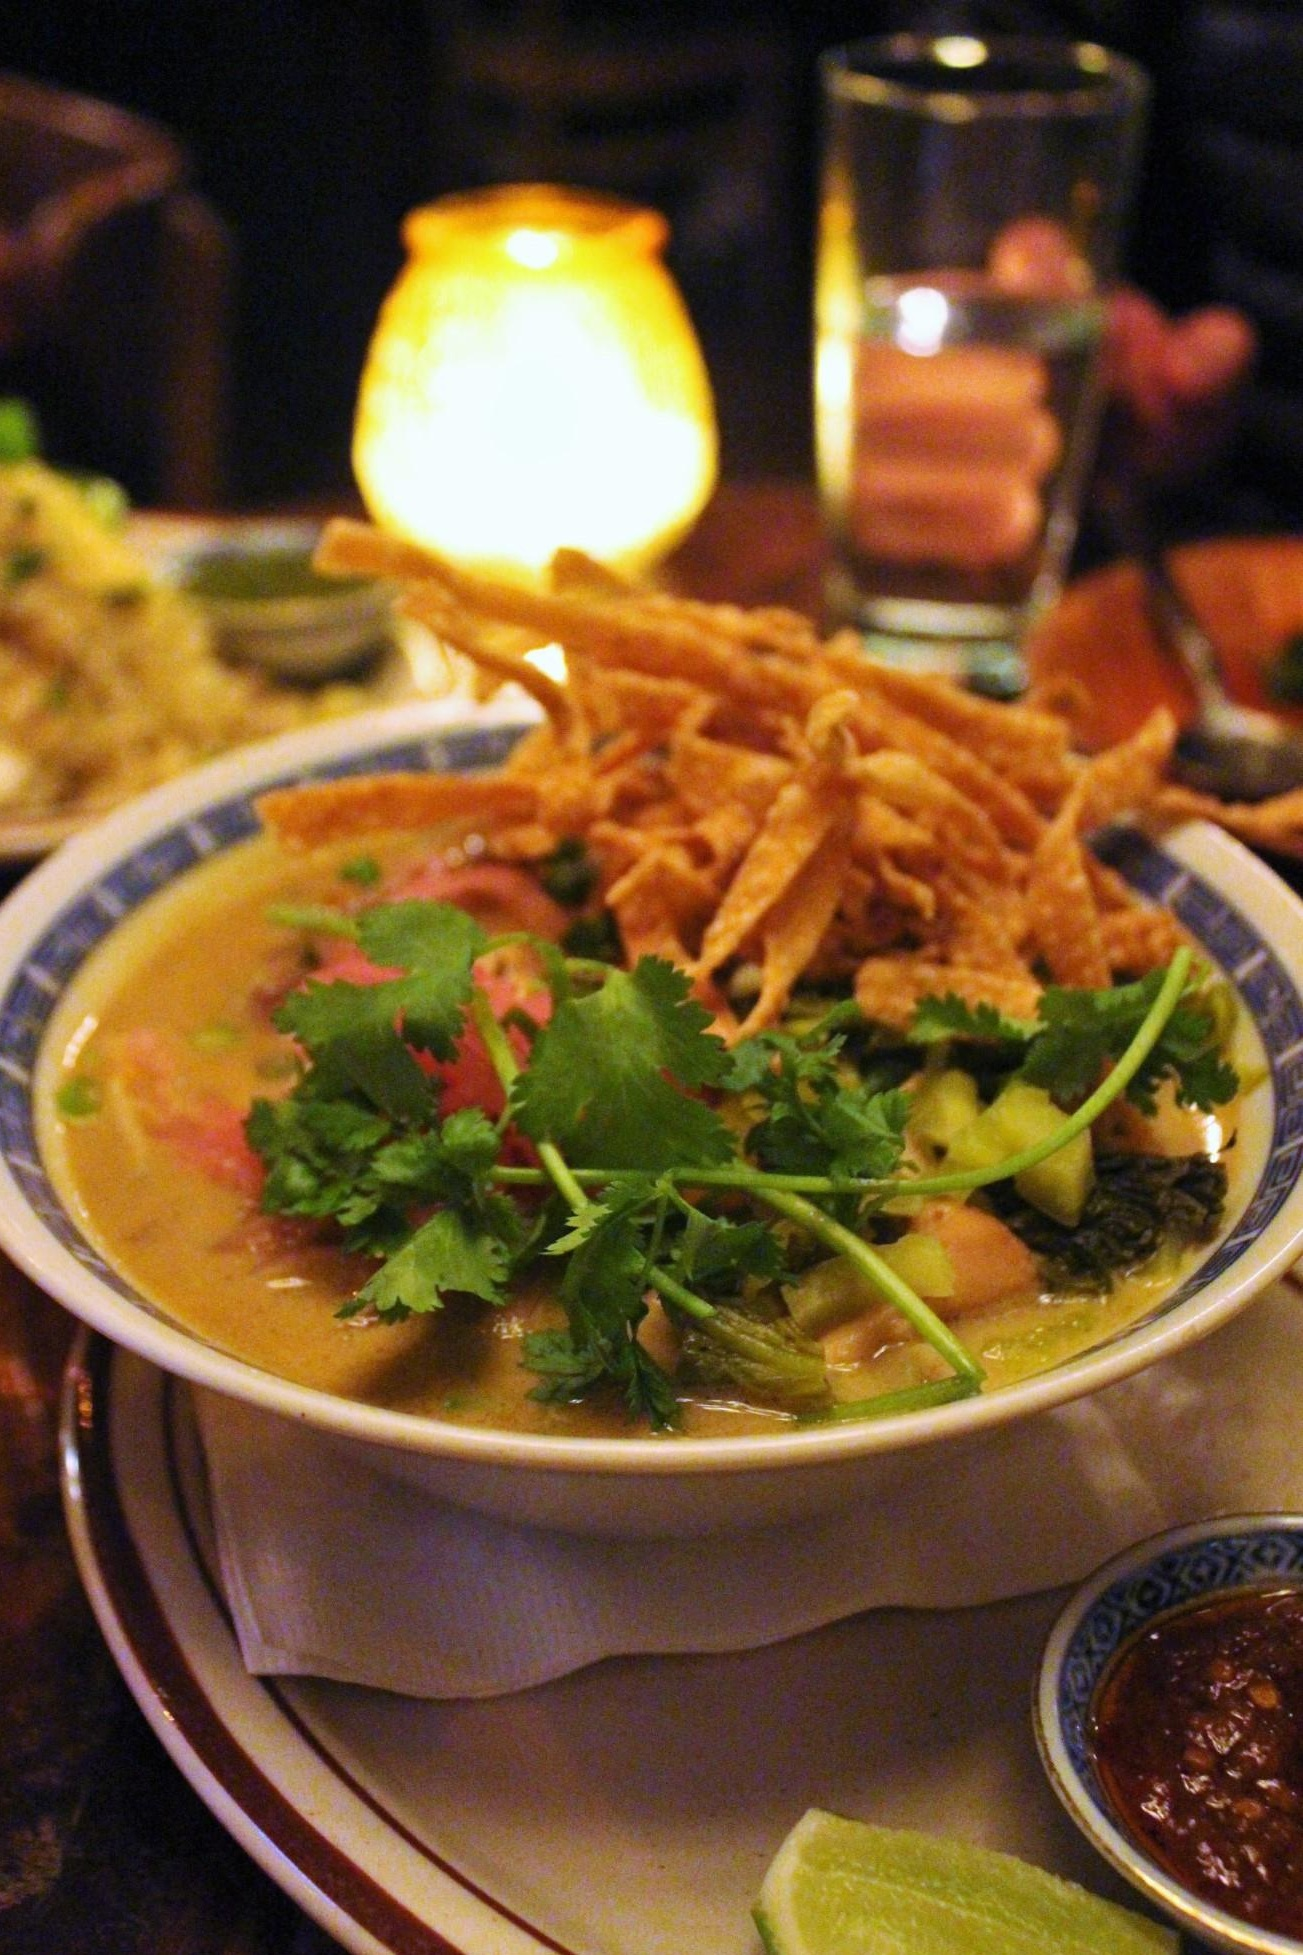 Khao Soi Kaa Gai: Northern Style Golden Curry with Homemade Egg Noodles, Chicken Leg, Pickled Mustard Greens, and Fresh Tumeric at Uncle Boons